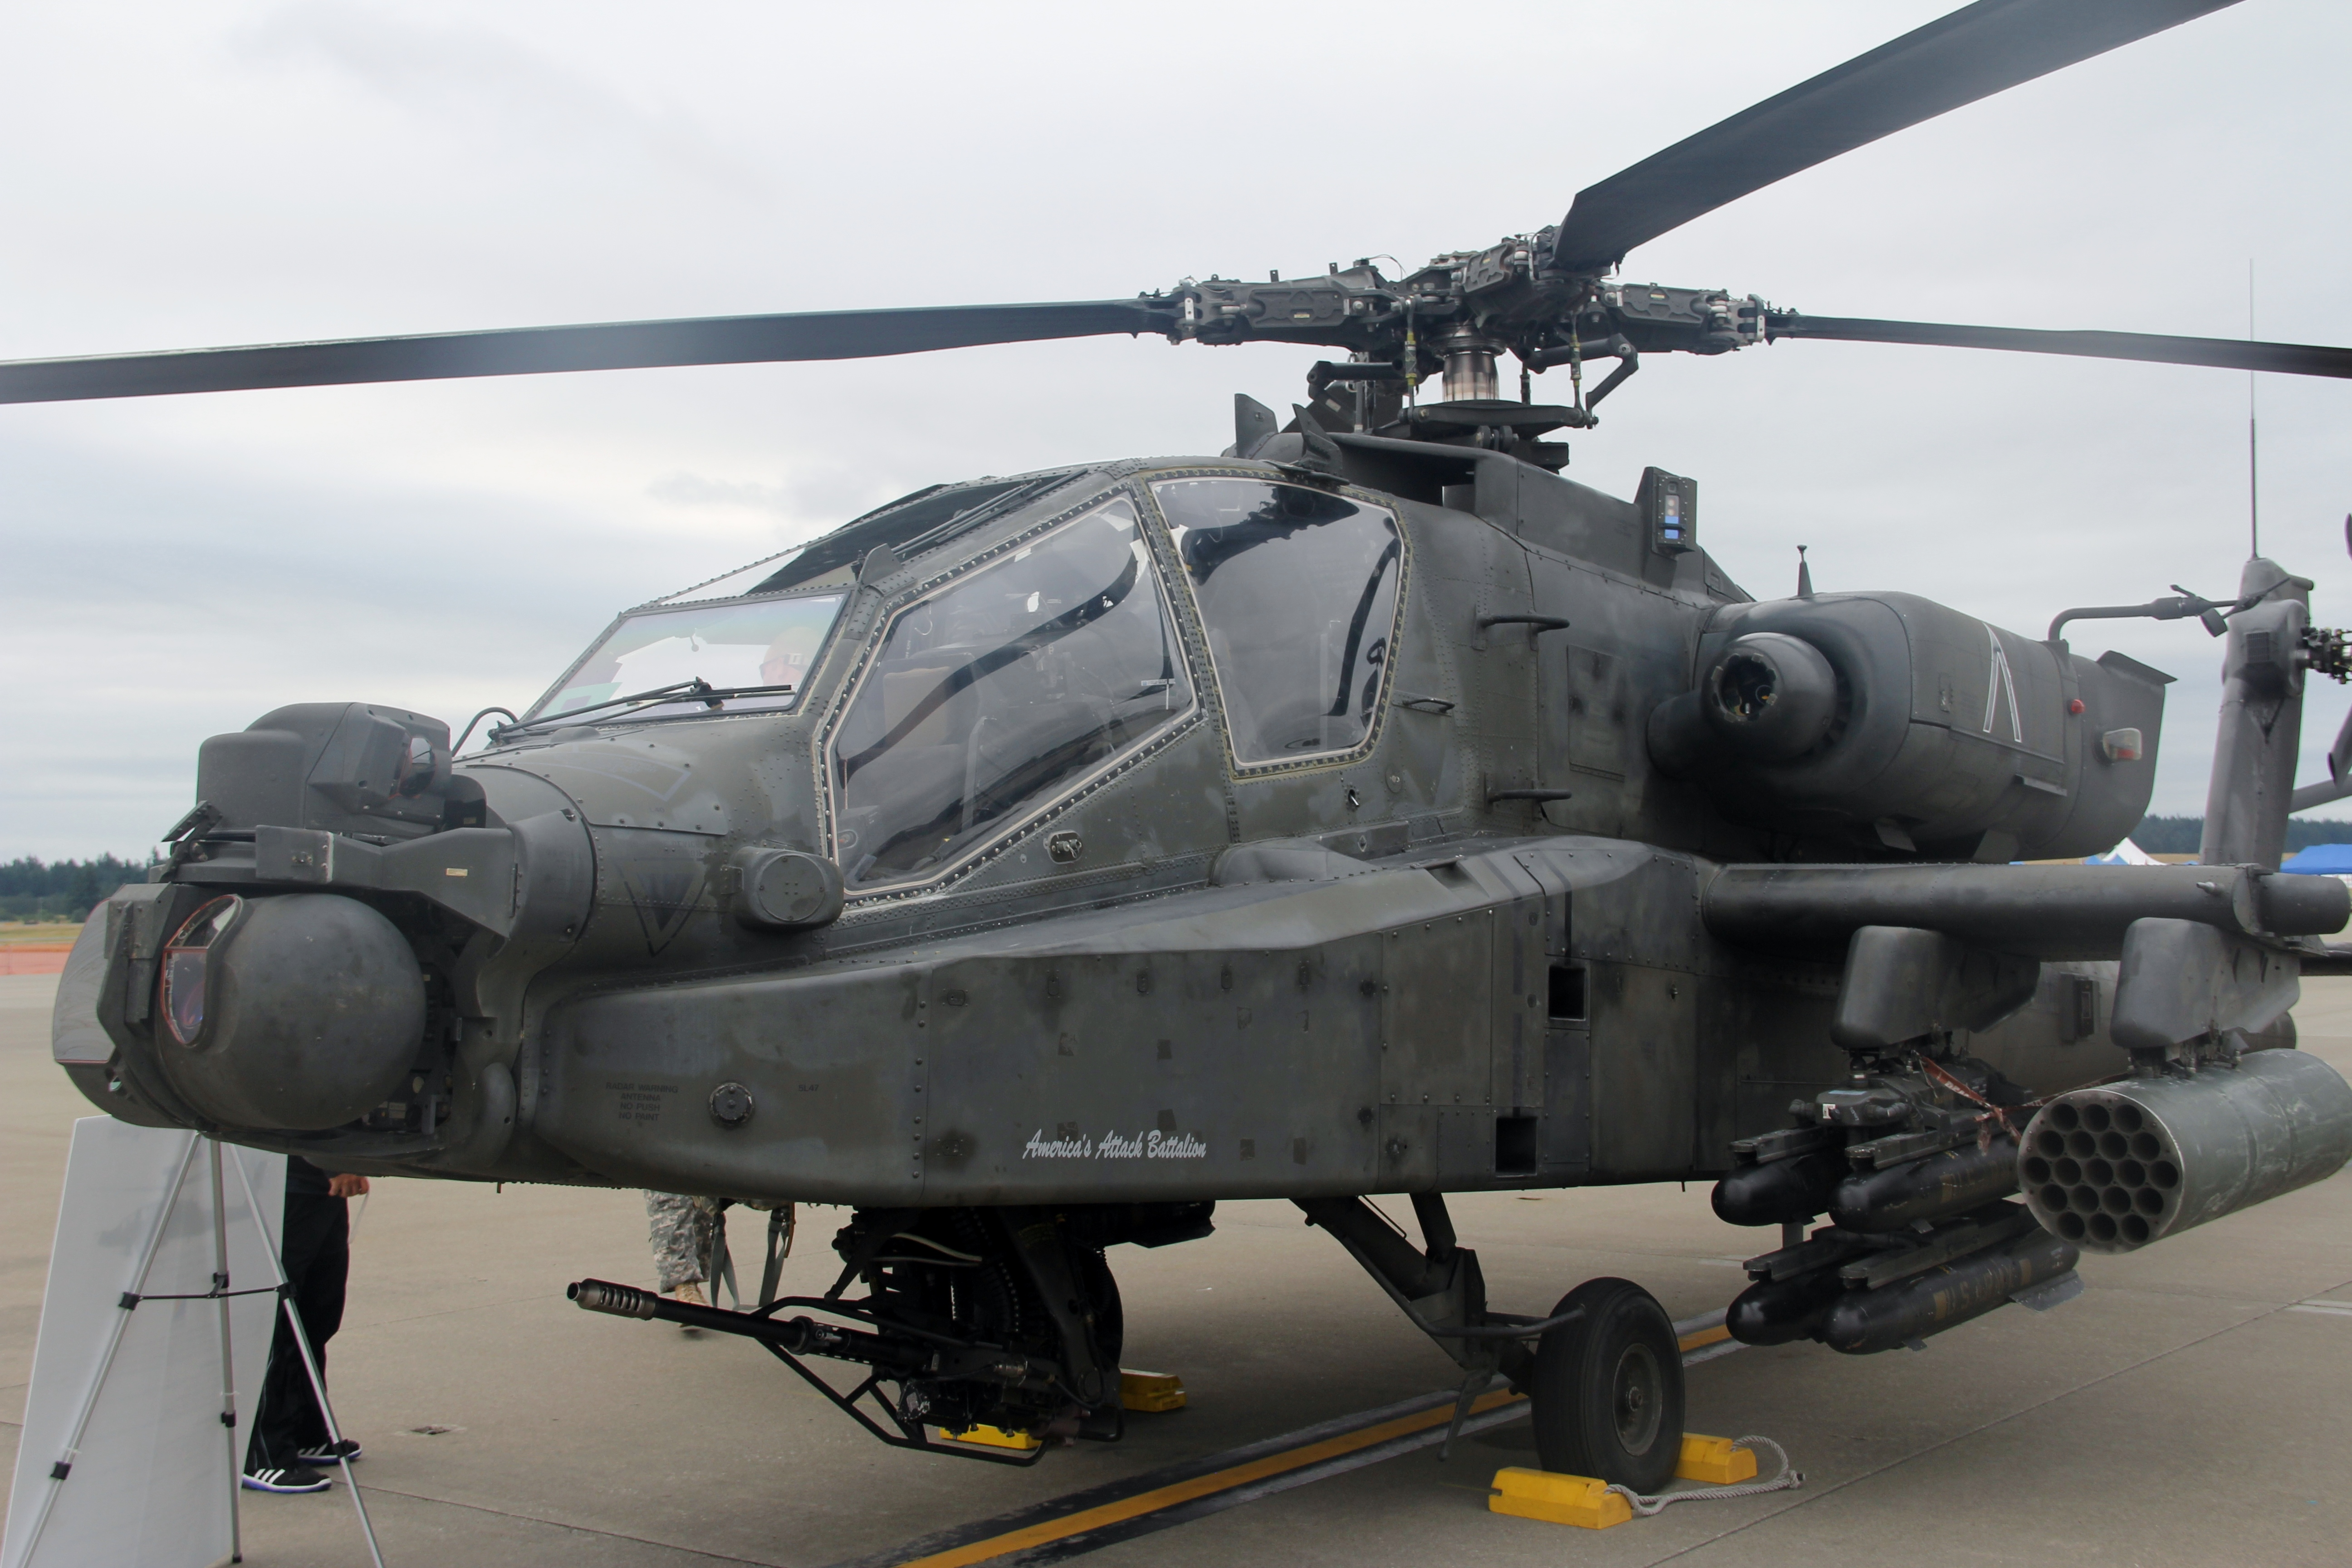 apache helicopter hd wallpaper with Search on Apache Helicopter Wallpaper moreover Cobra Helicopter Desktop Background Wallpapers together with Ah 64 Pics additionally Helicopter Details moreover Tiger Tank Wallpaper Photos.